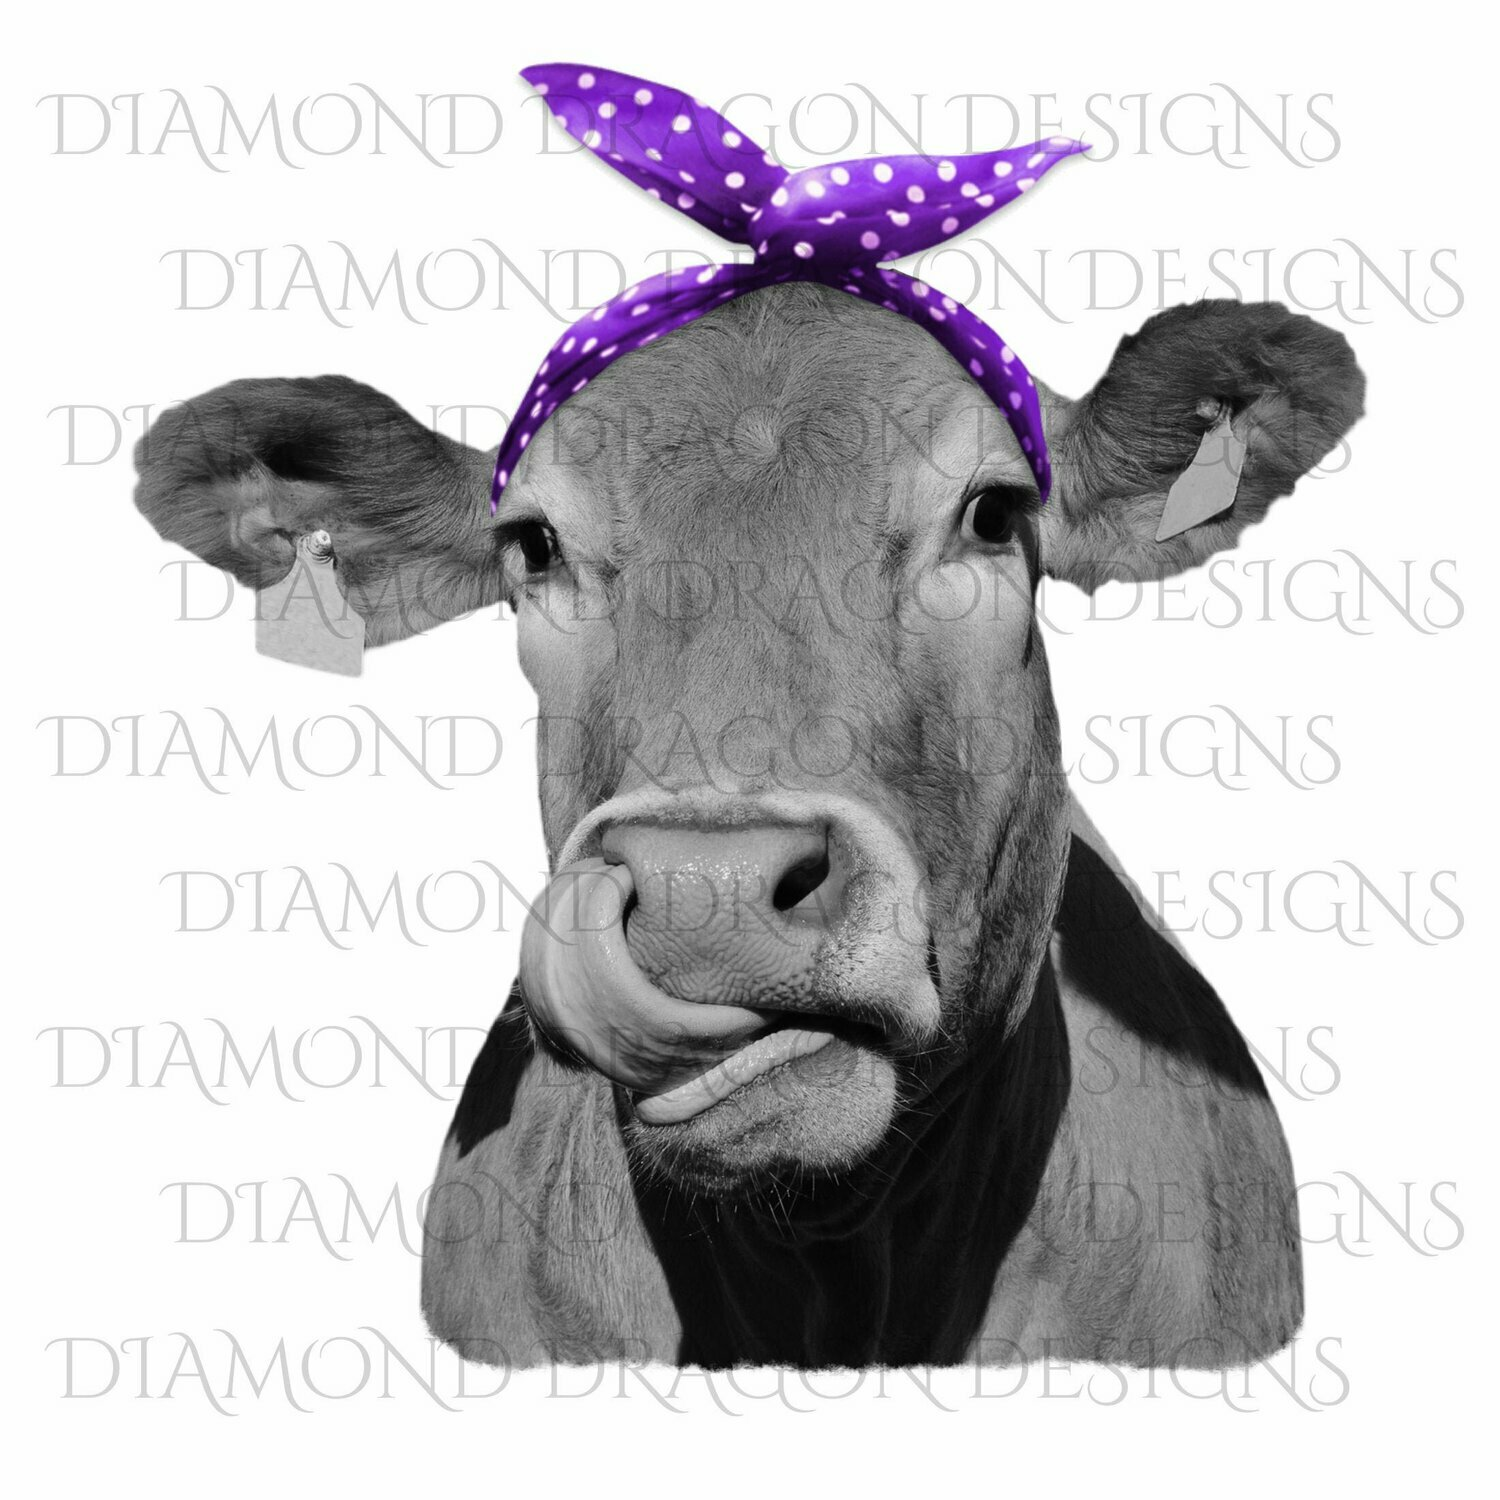 Cows - Heifer, Cute Cow with Purple Polkadot Bandana, Cowlick, Cow Tongue Out, Digital Image